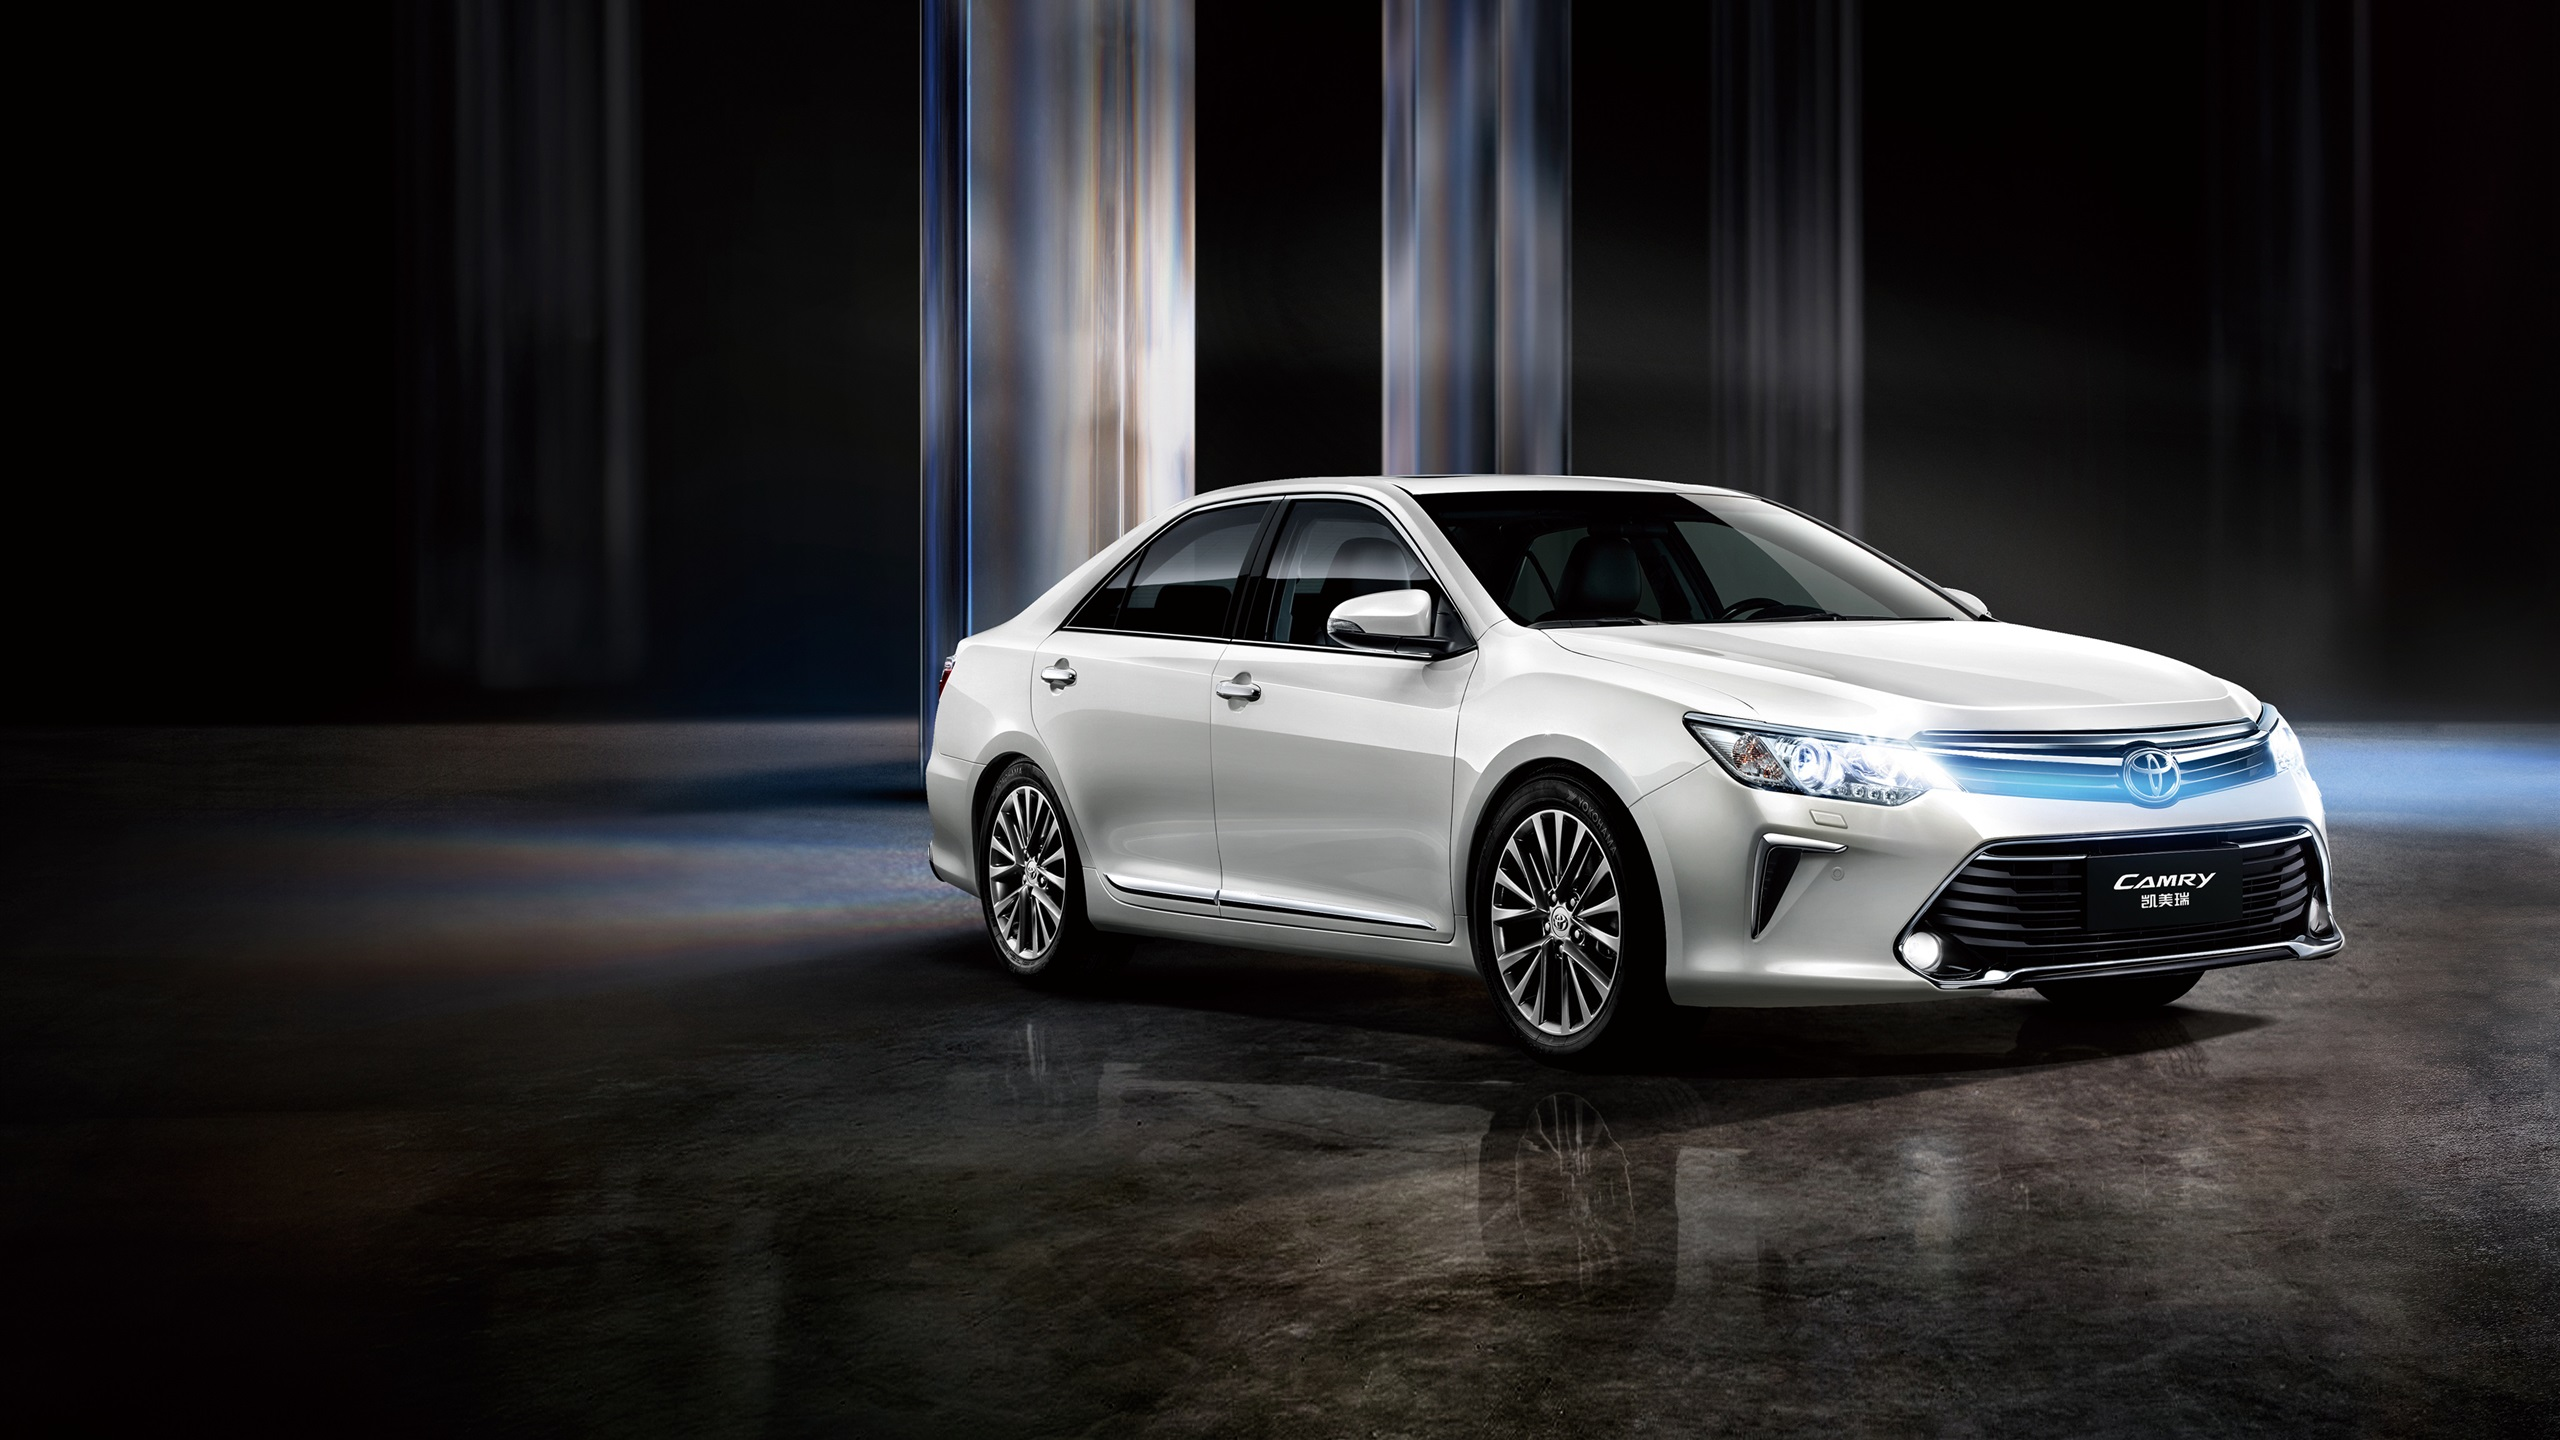 Toyota Camry 2020 White Wallpapers Backgrounds